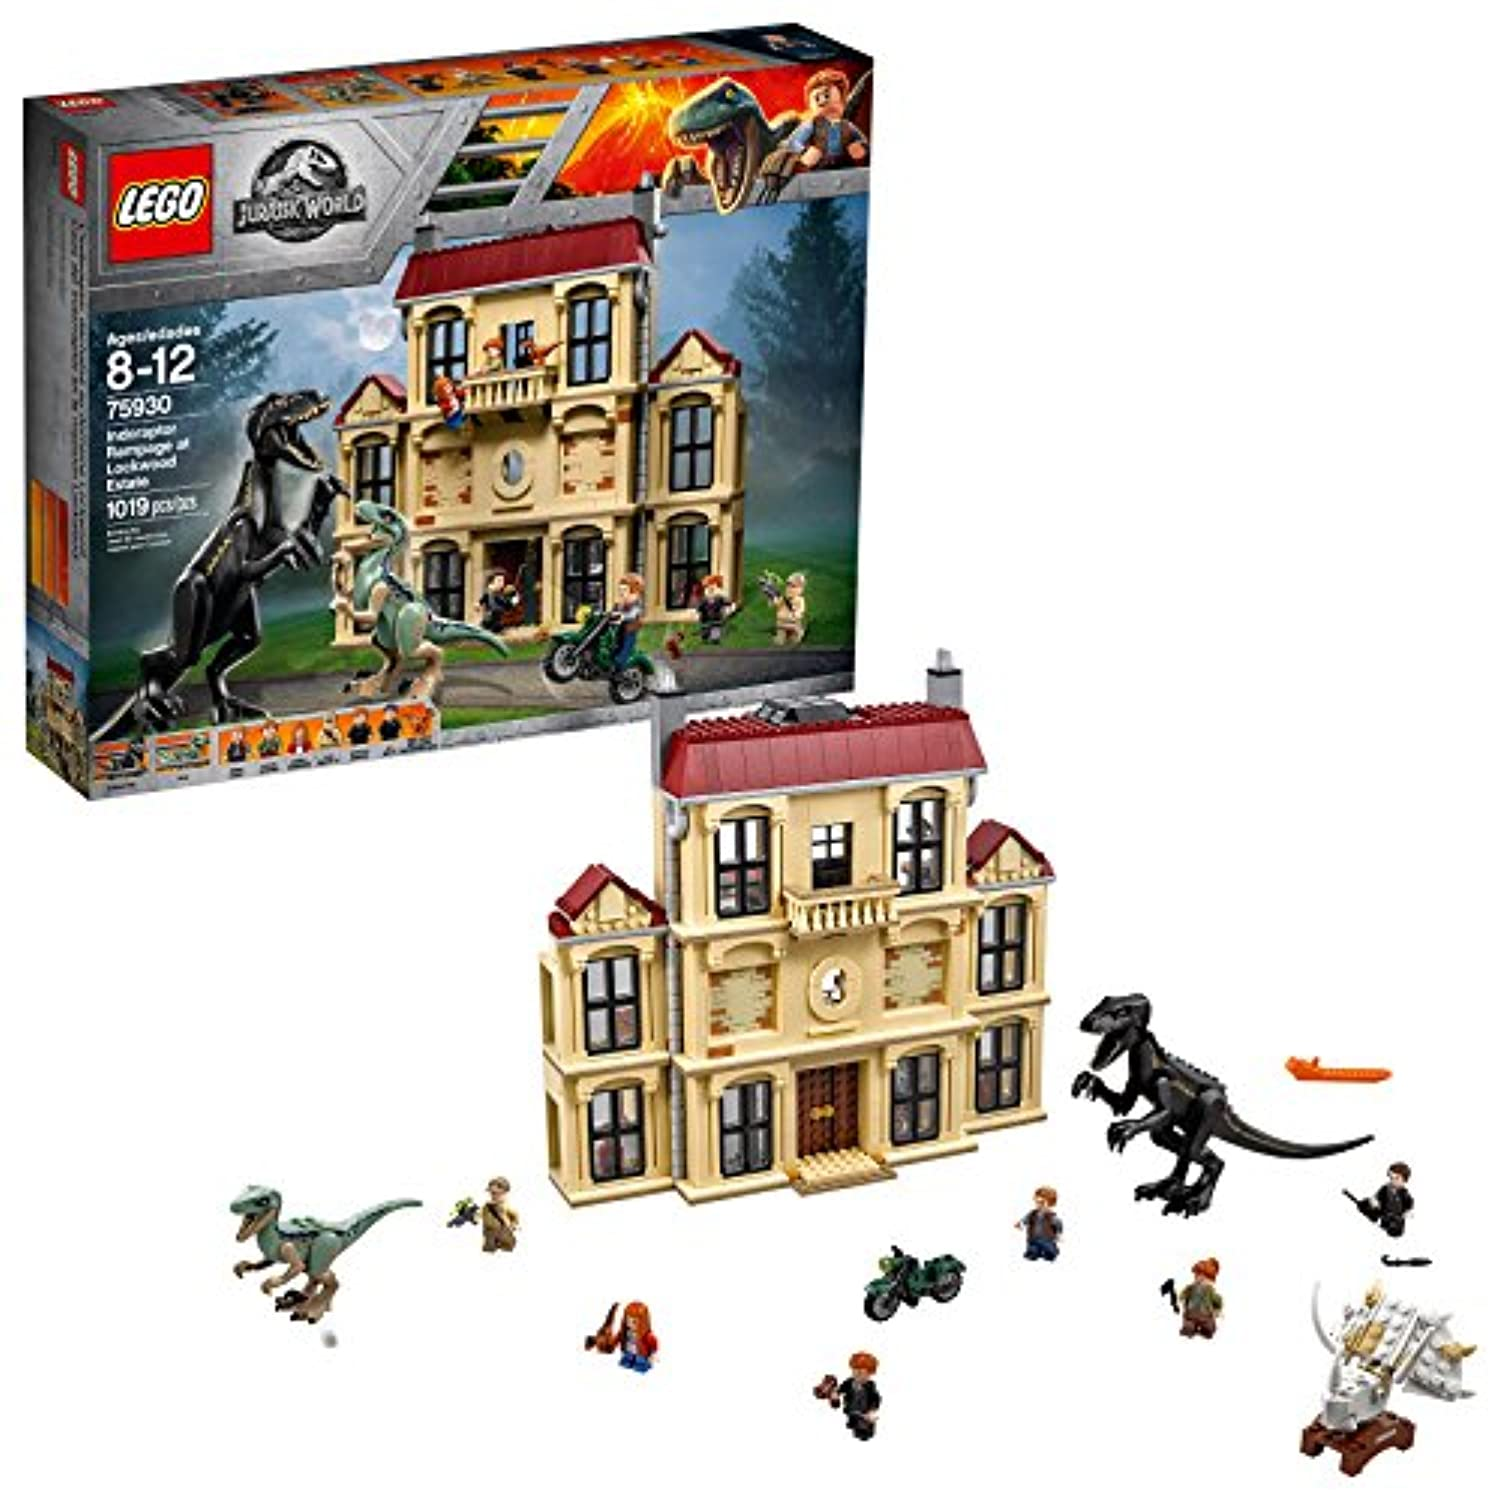 LEGO Jurassic World indoraptor Rampage atロックウッドEstate 75930建物キット1019 Pieces